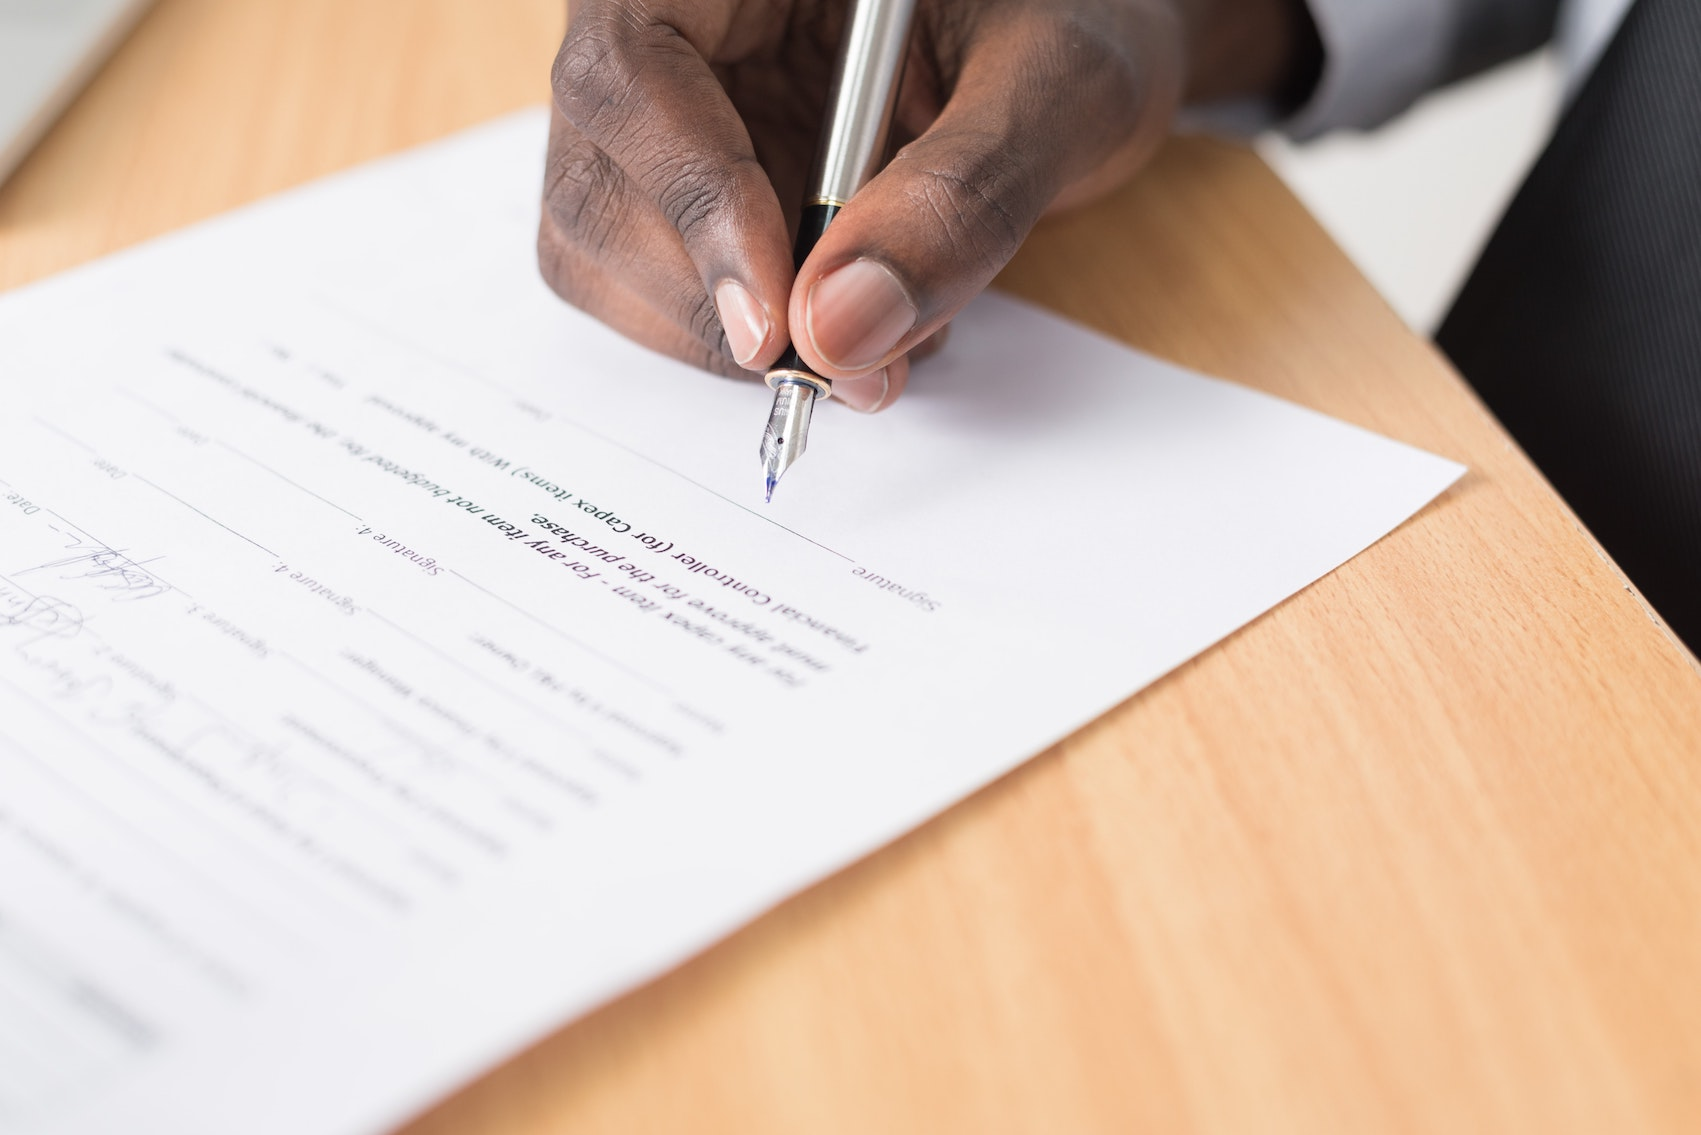 How to send an electronic nondisclosure agreement